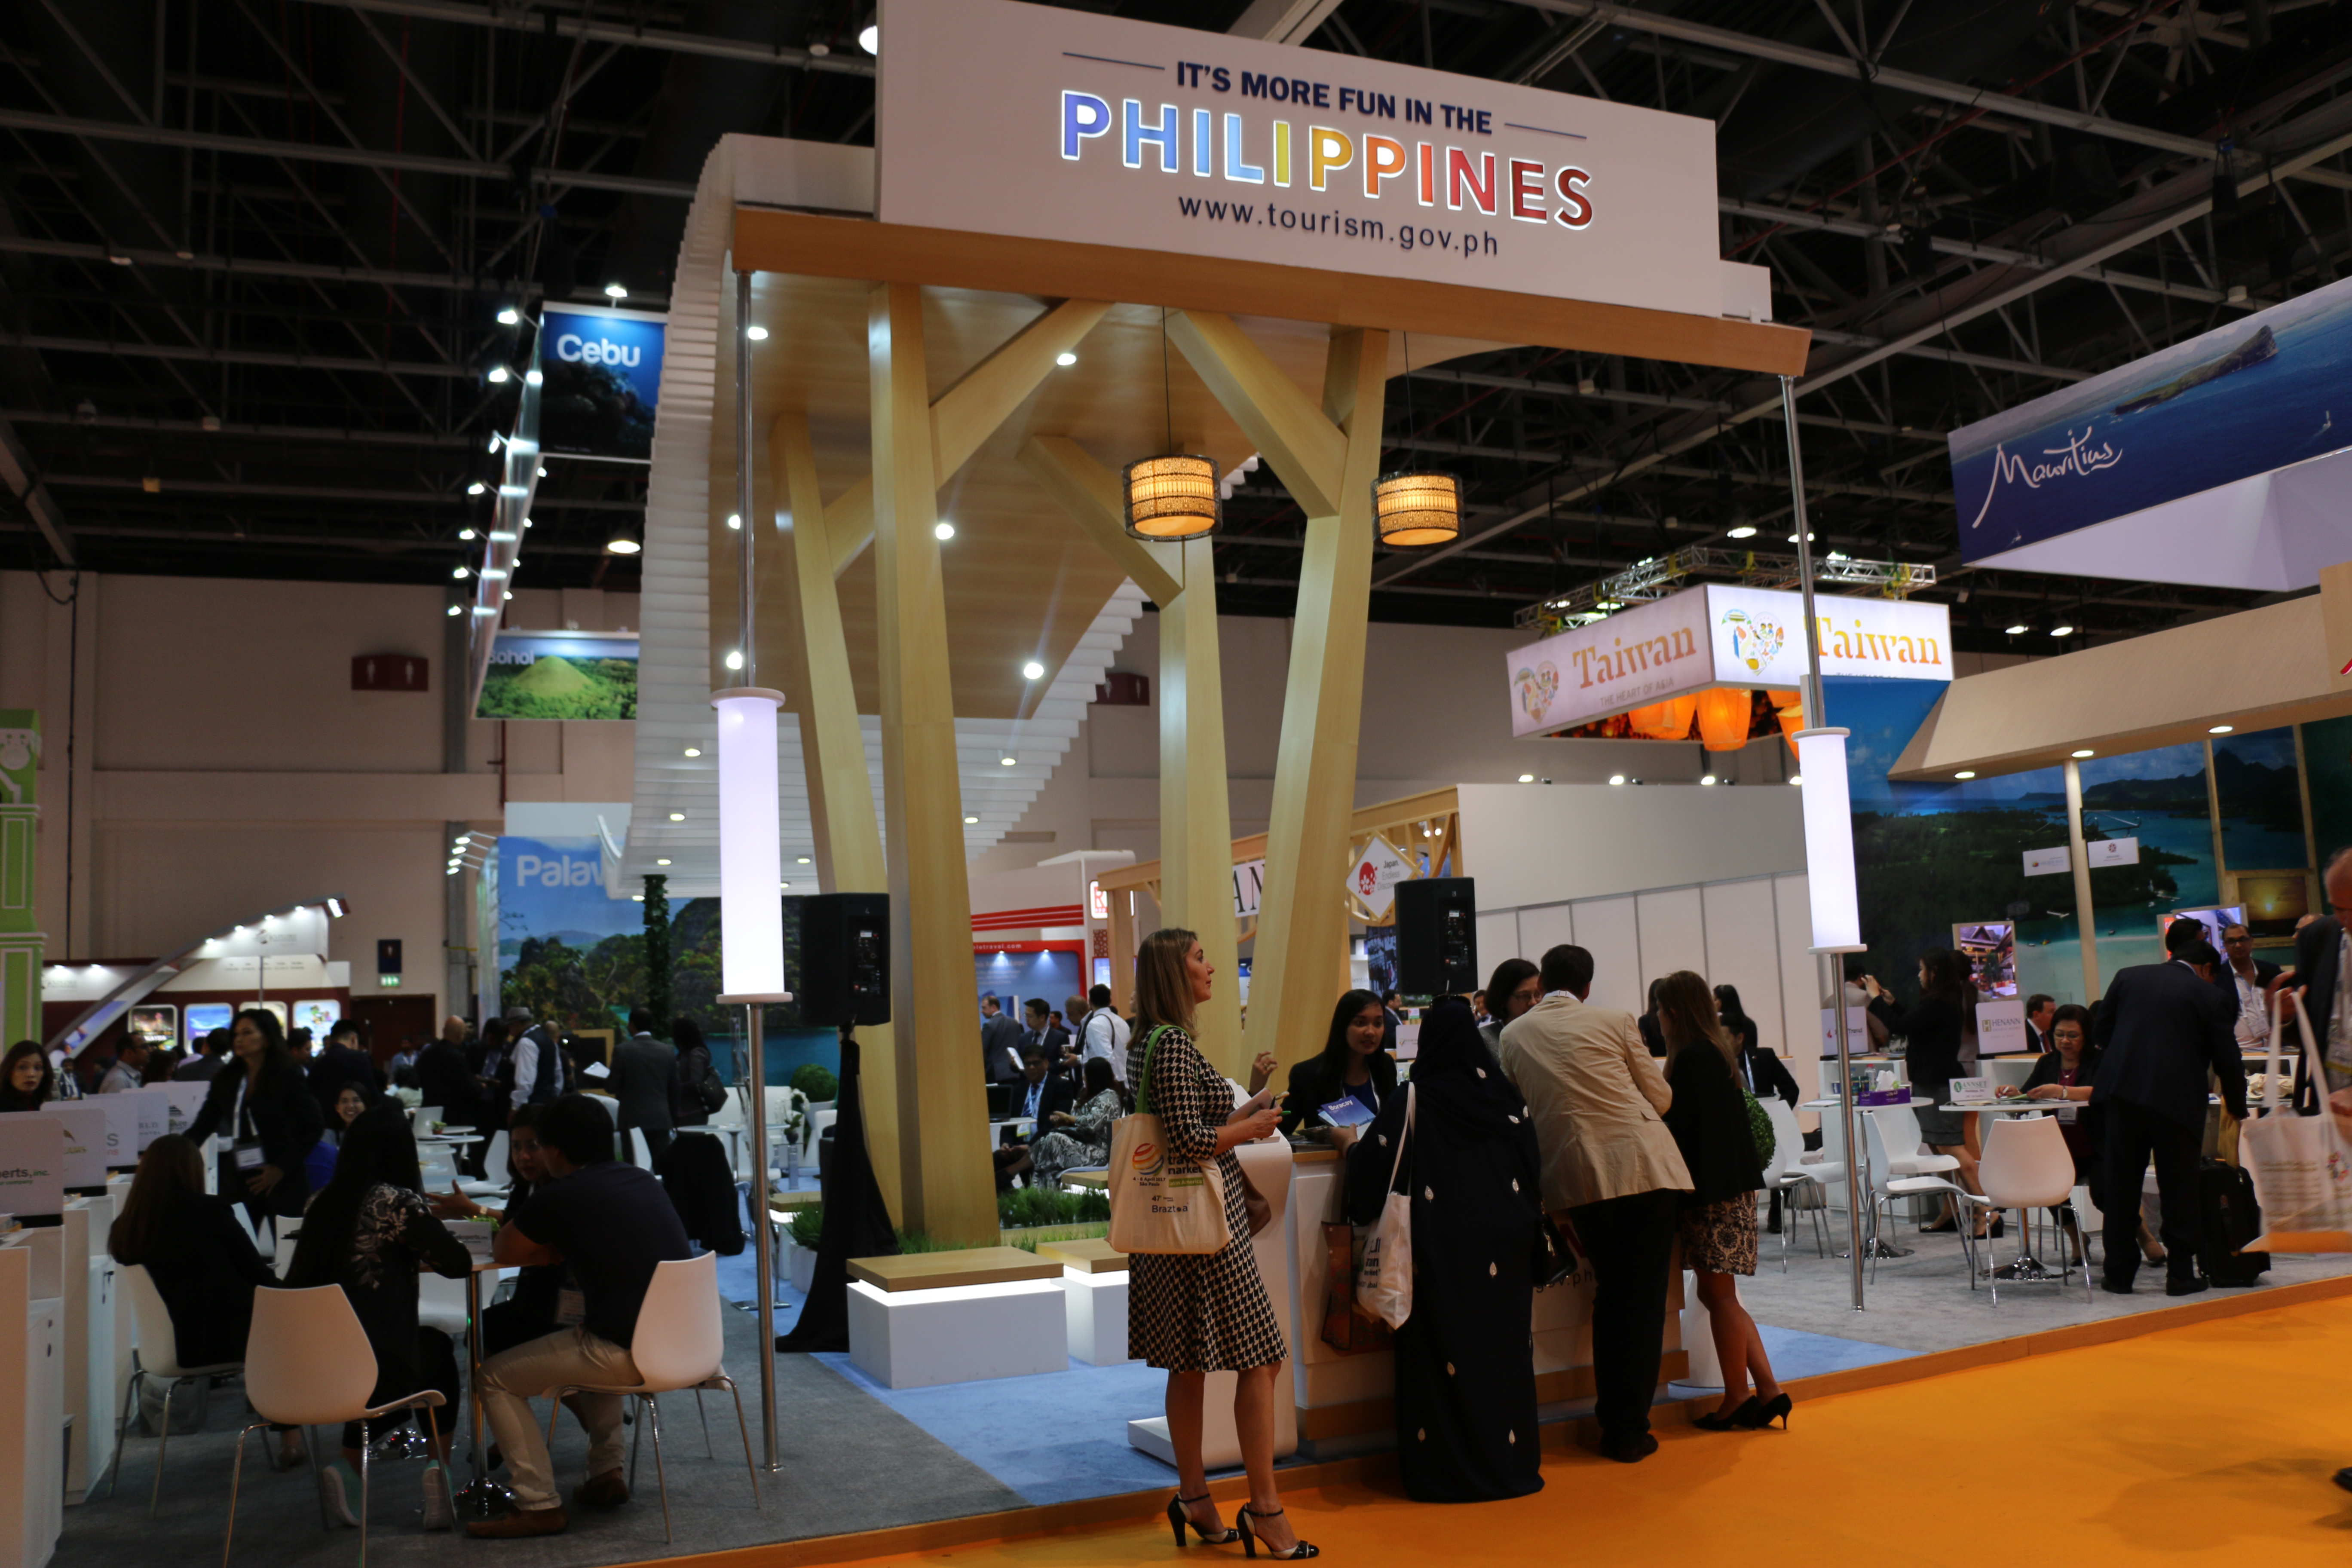 Ph receives 3,600 visitors from Korea daily